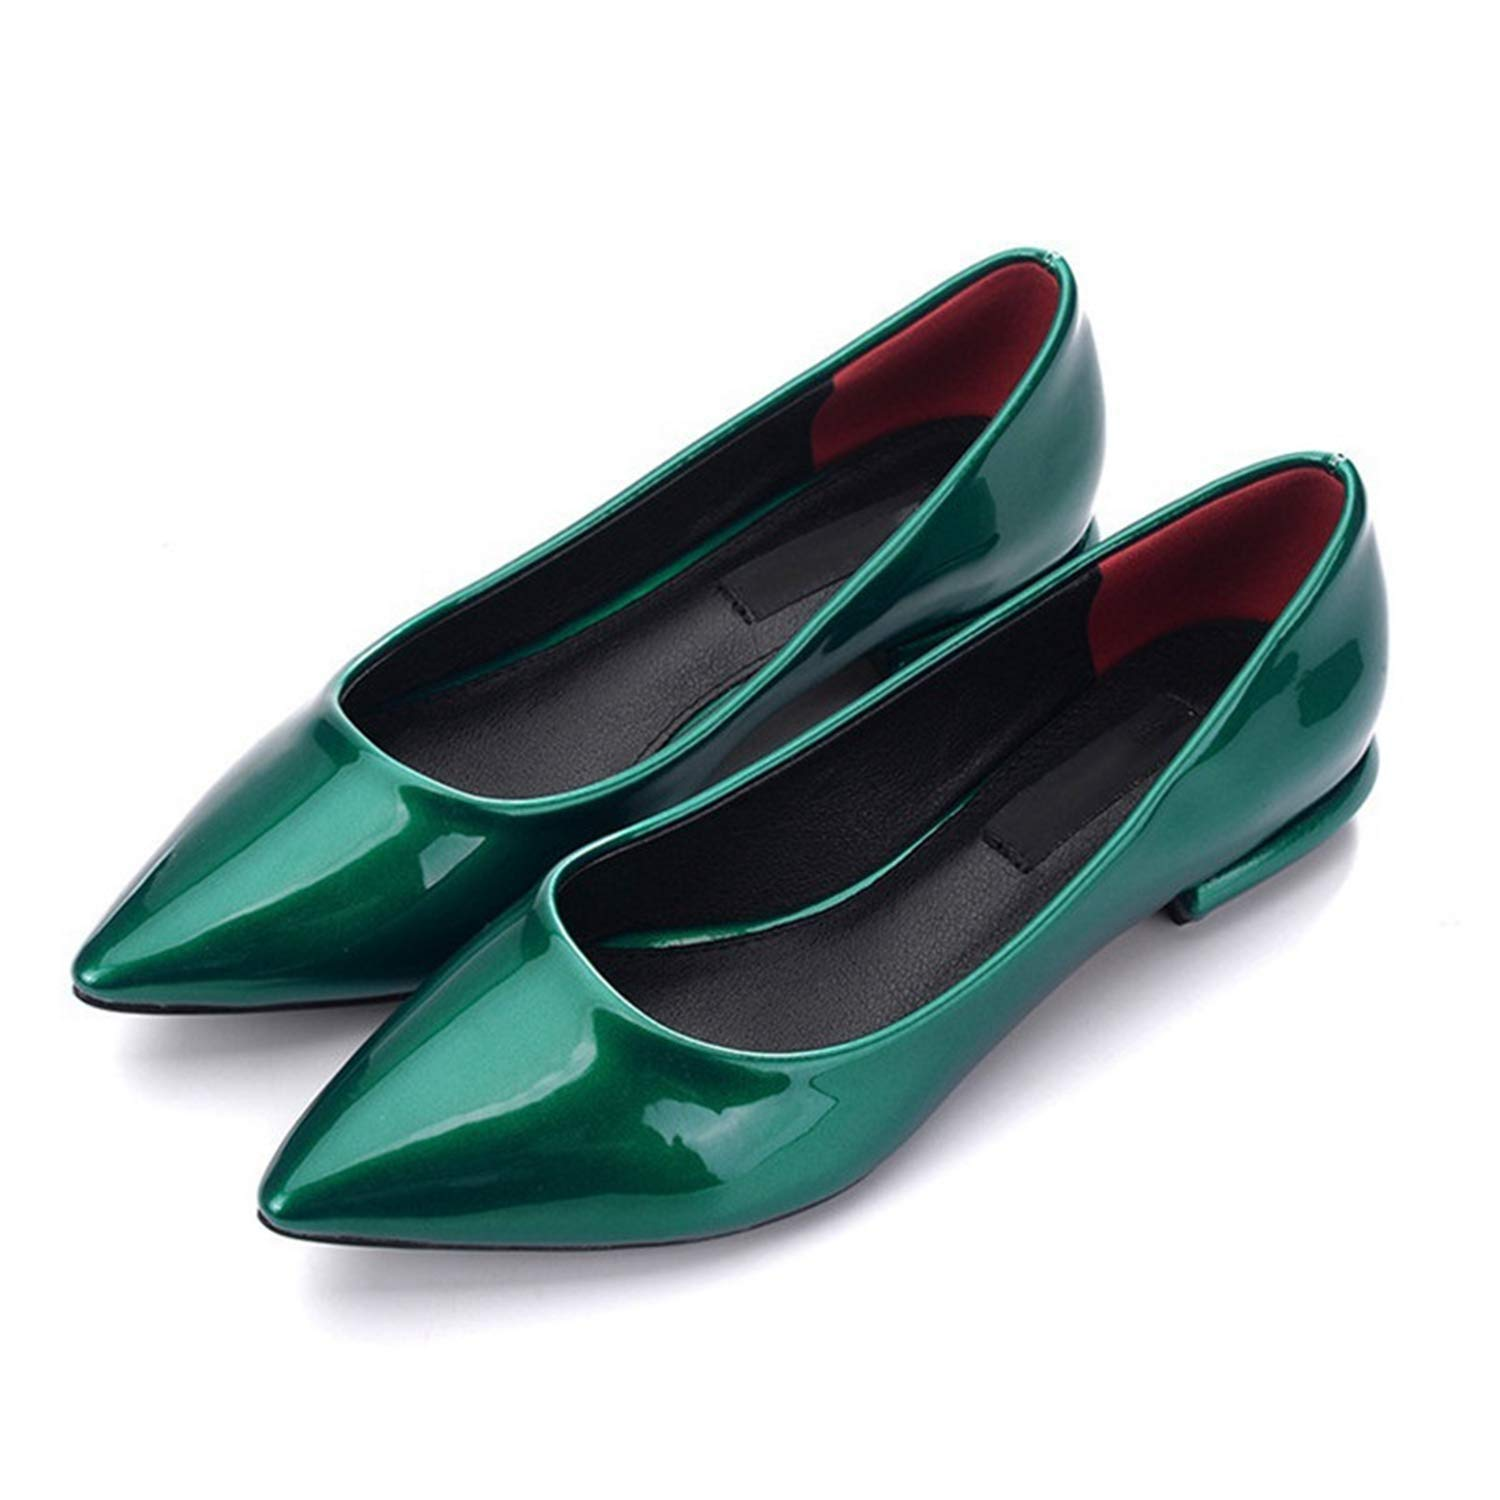 Michael Palmer Ladies Specular Patent Leather Flats Candy Colors Pointed Toe Shoes Green Grey Plus Size Footwear Dressing